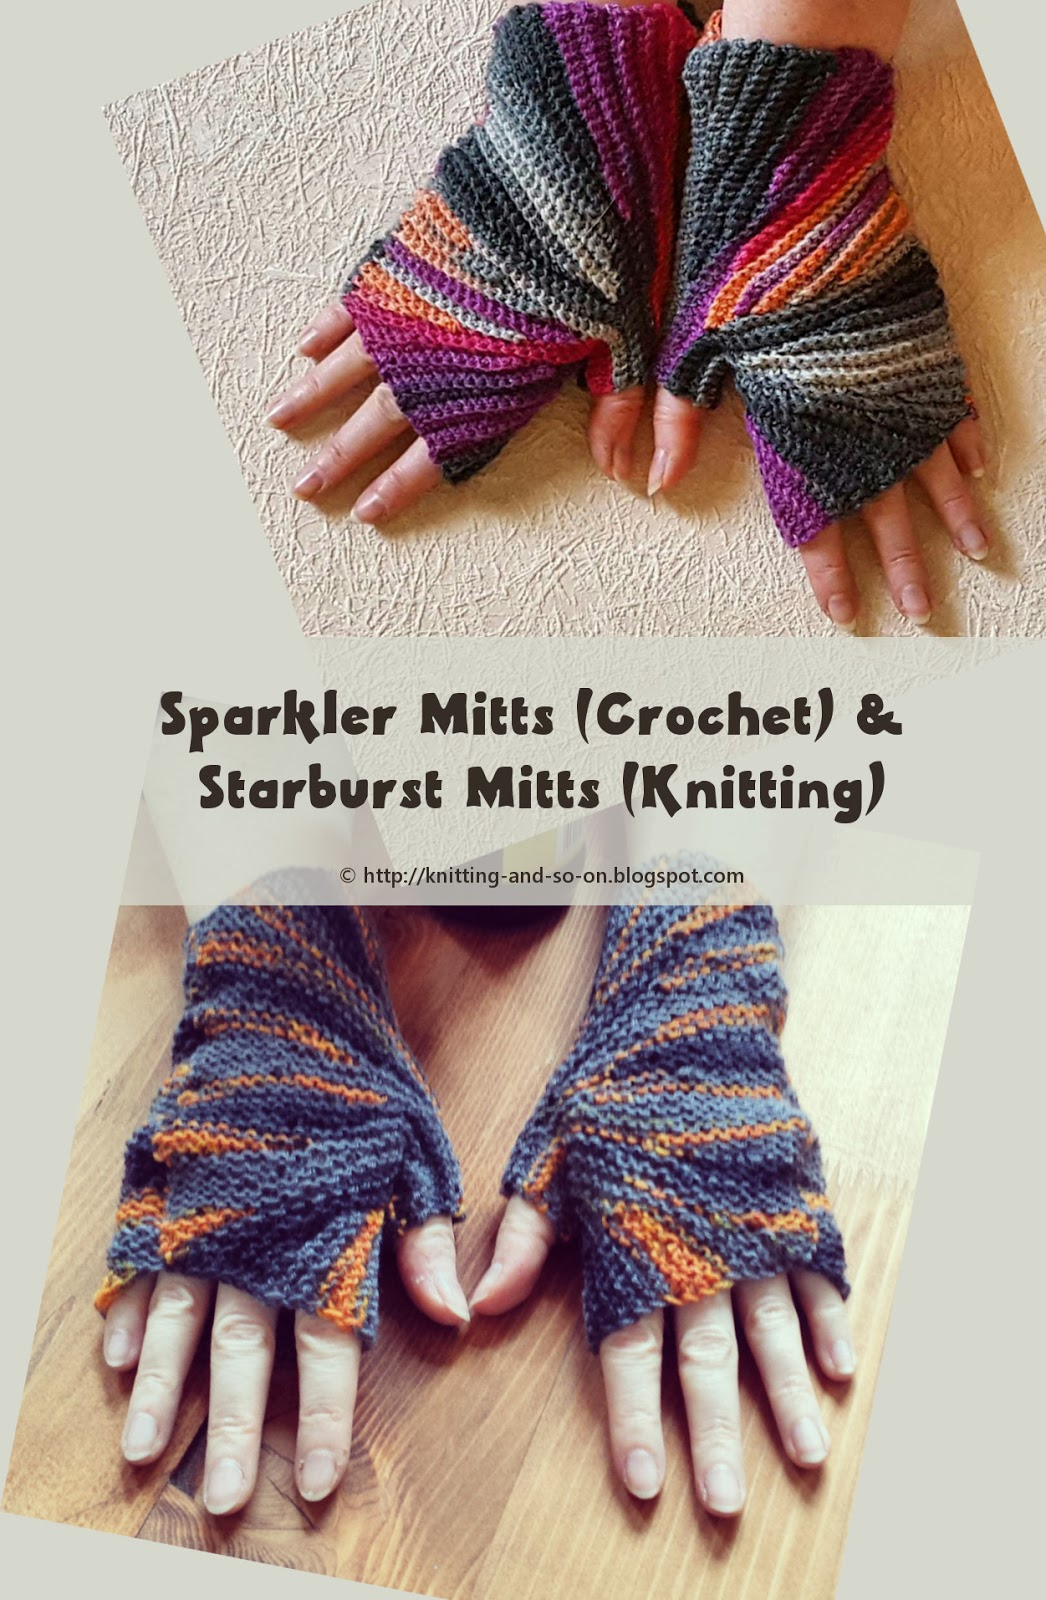 Knitting Vs Crochet Pictures : Knitting and so on patterns with a crochet